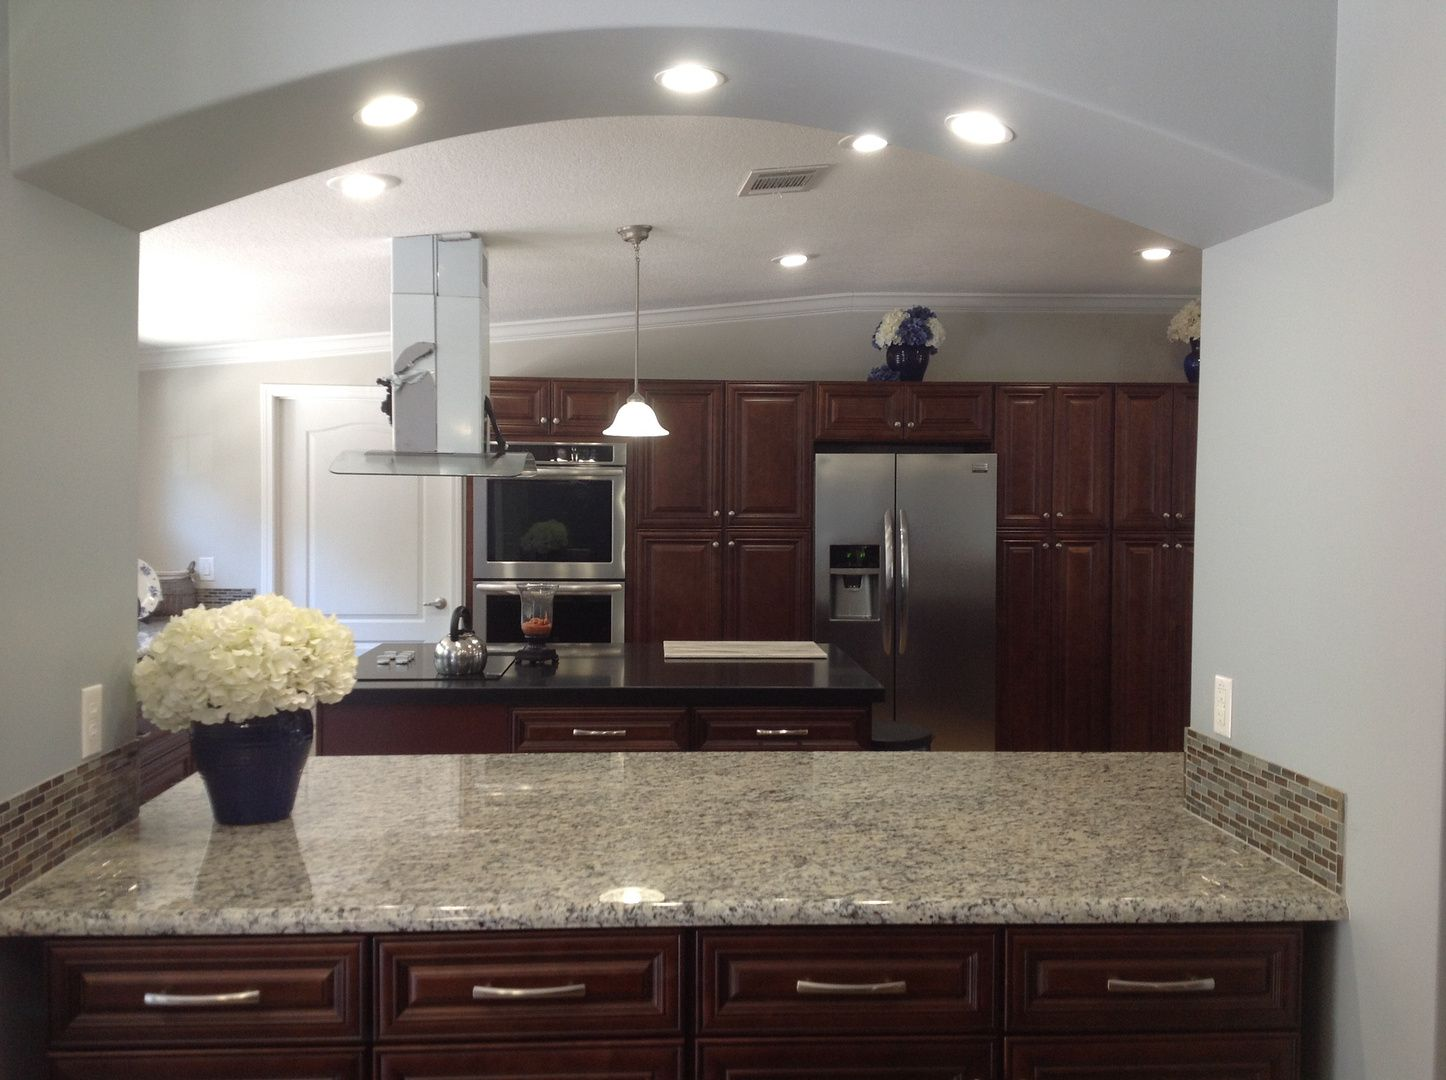 Beau 99+ Granite Countertops Gainesville Fl   Chalkboard Ideas For Kitchen Check  More At Http: